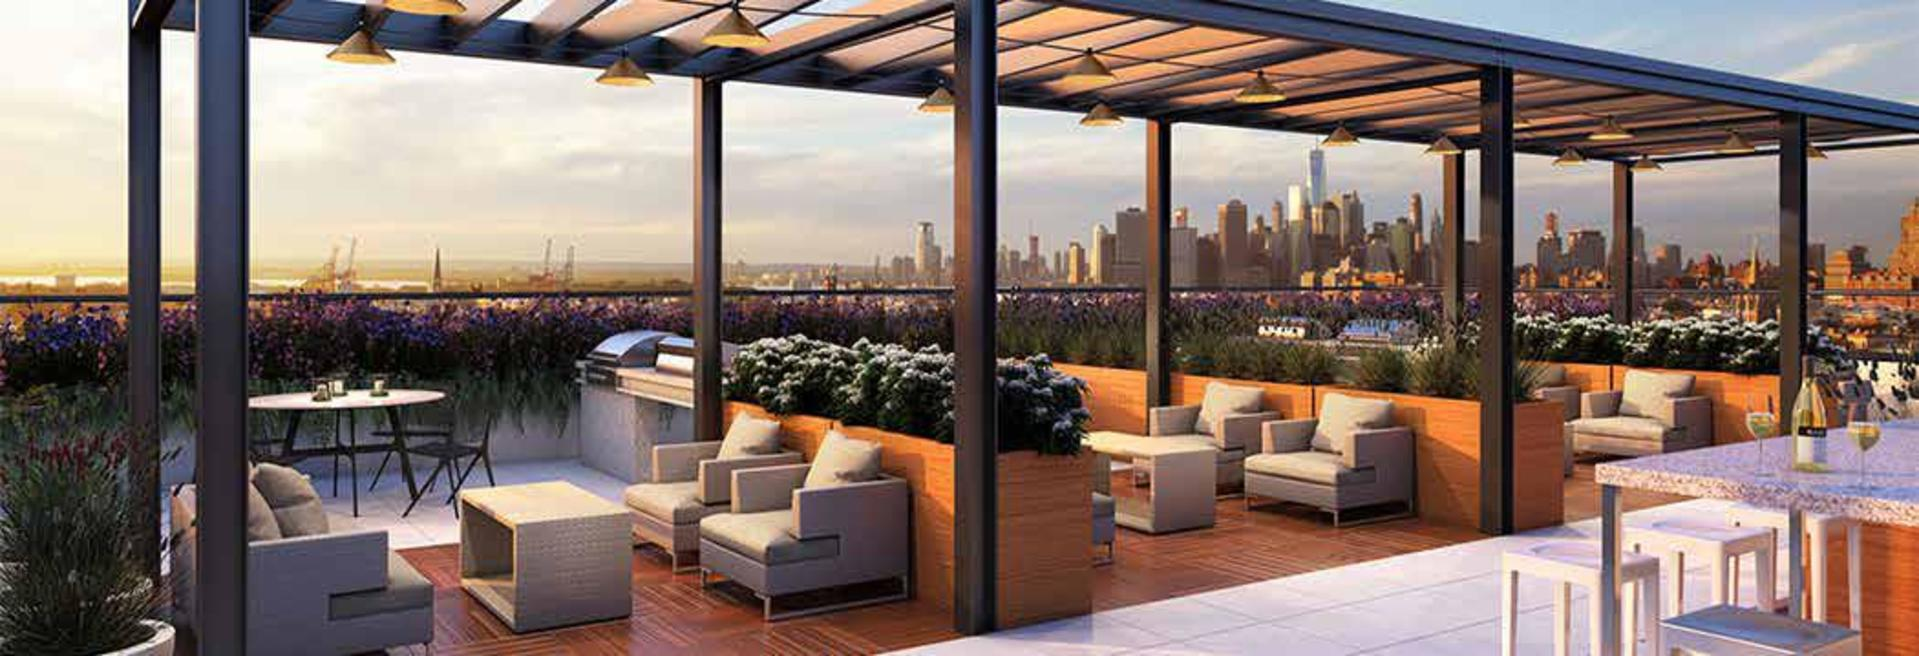 Ovation Rooftop Terrace at Ovation (813 Carnarvon Street, Downtown NW, New Westminster)